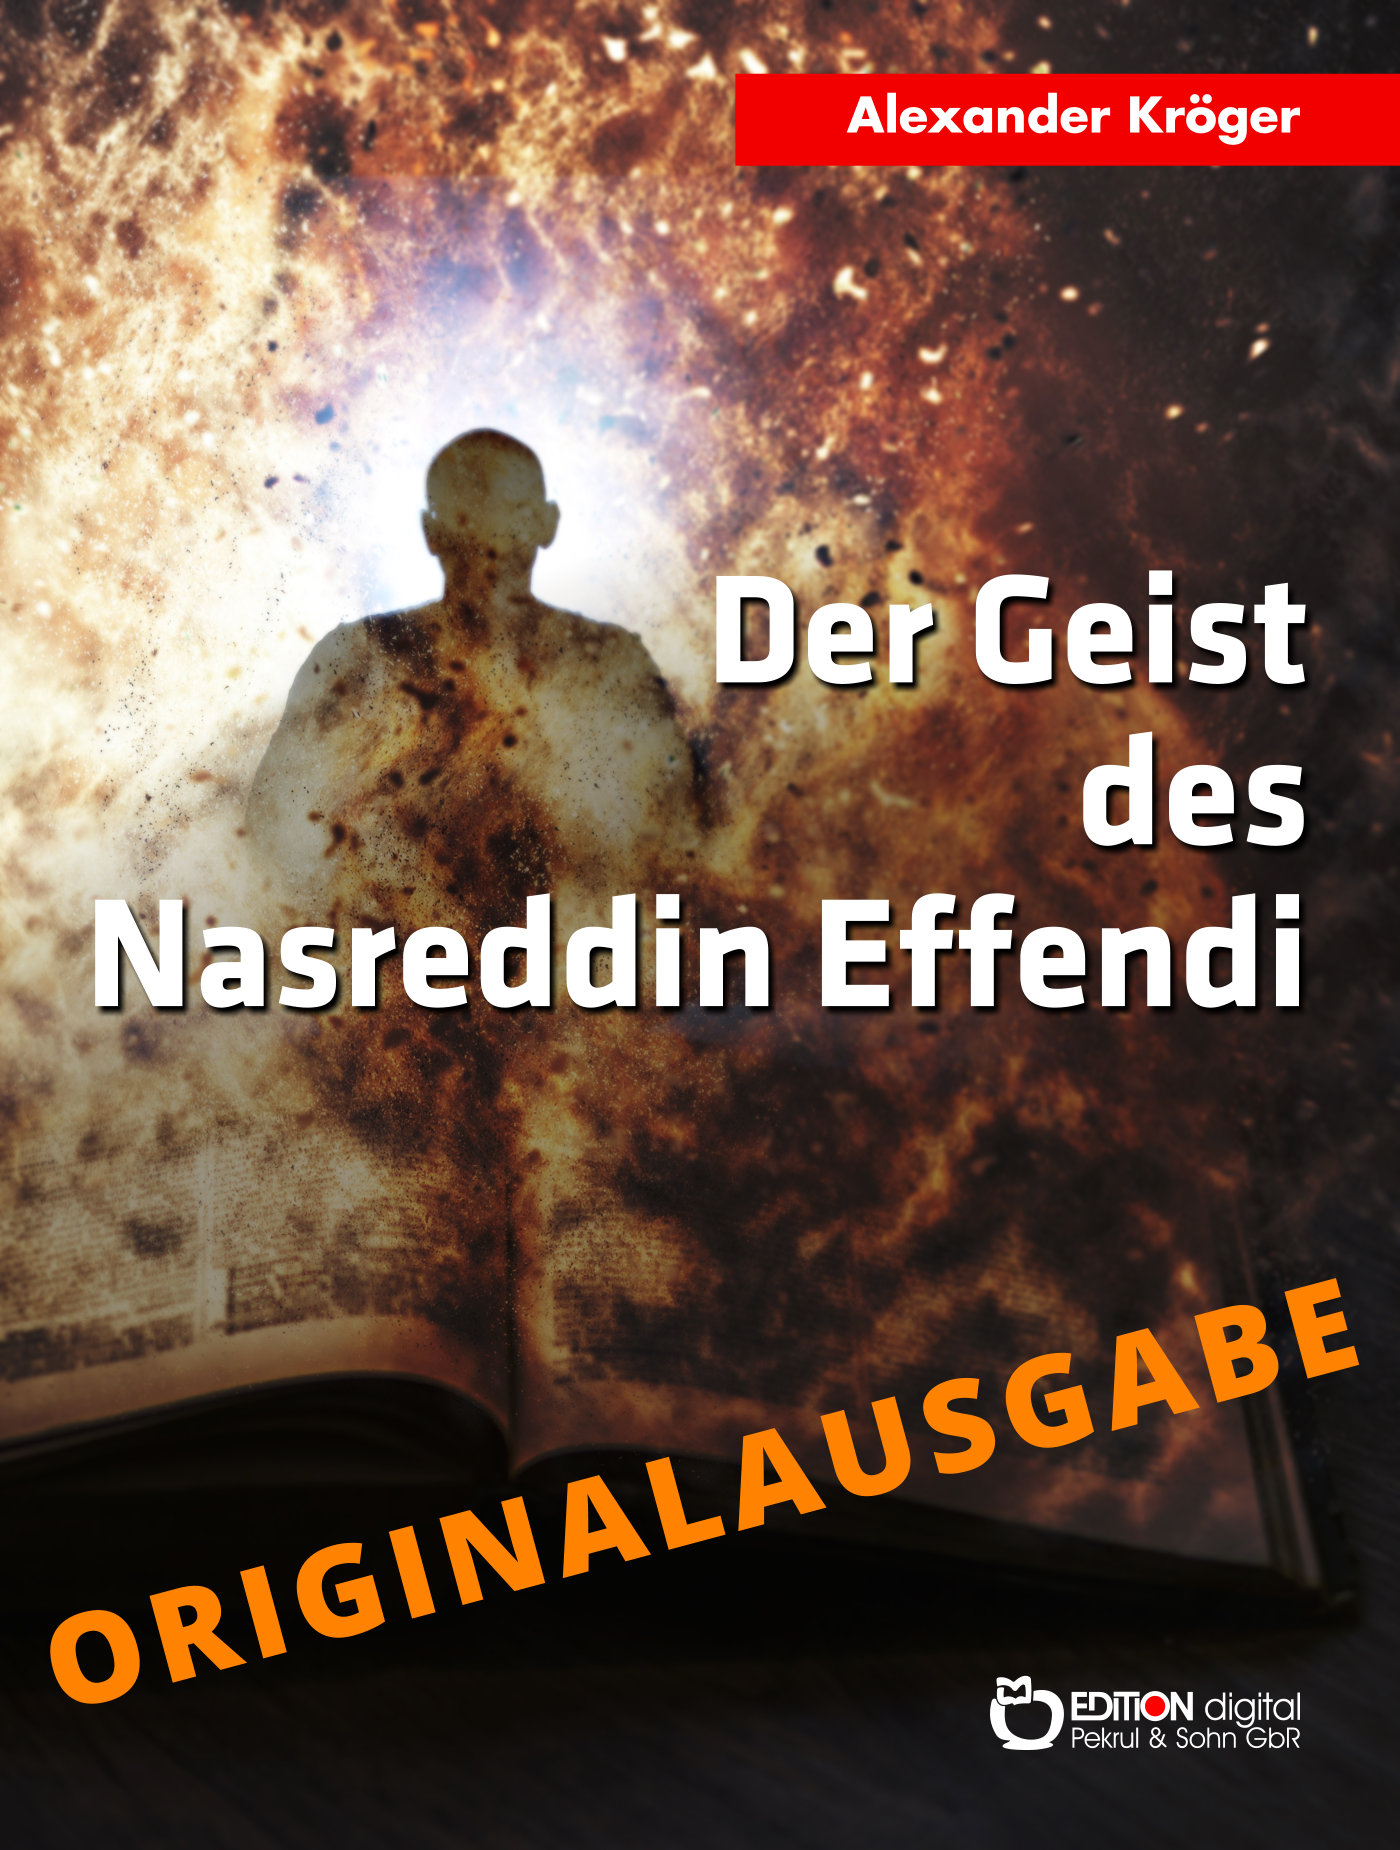 Der Geist des Nasreddin Effendi - Originalausgabe von Alexander Kröger